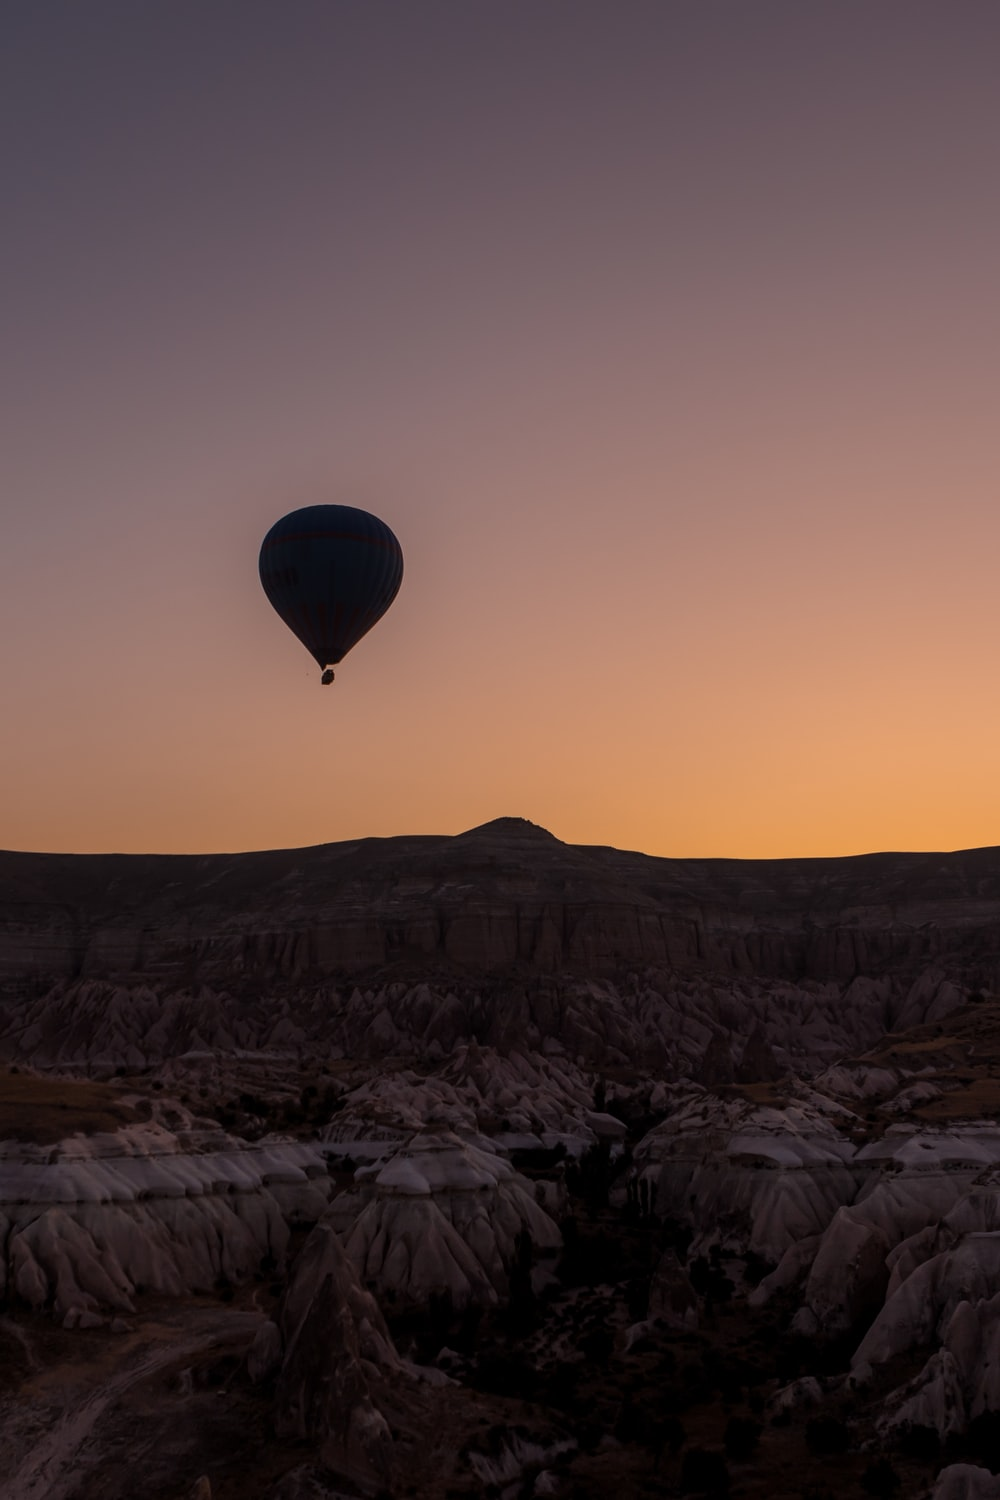 hot air balloon flying over the city during sunset